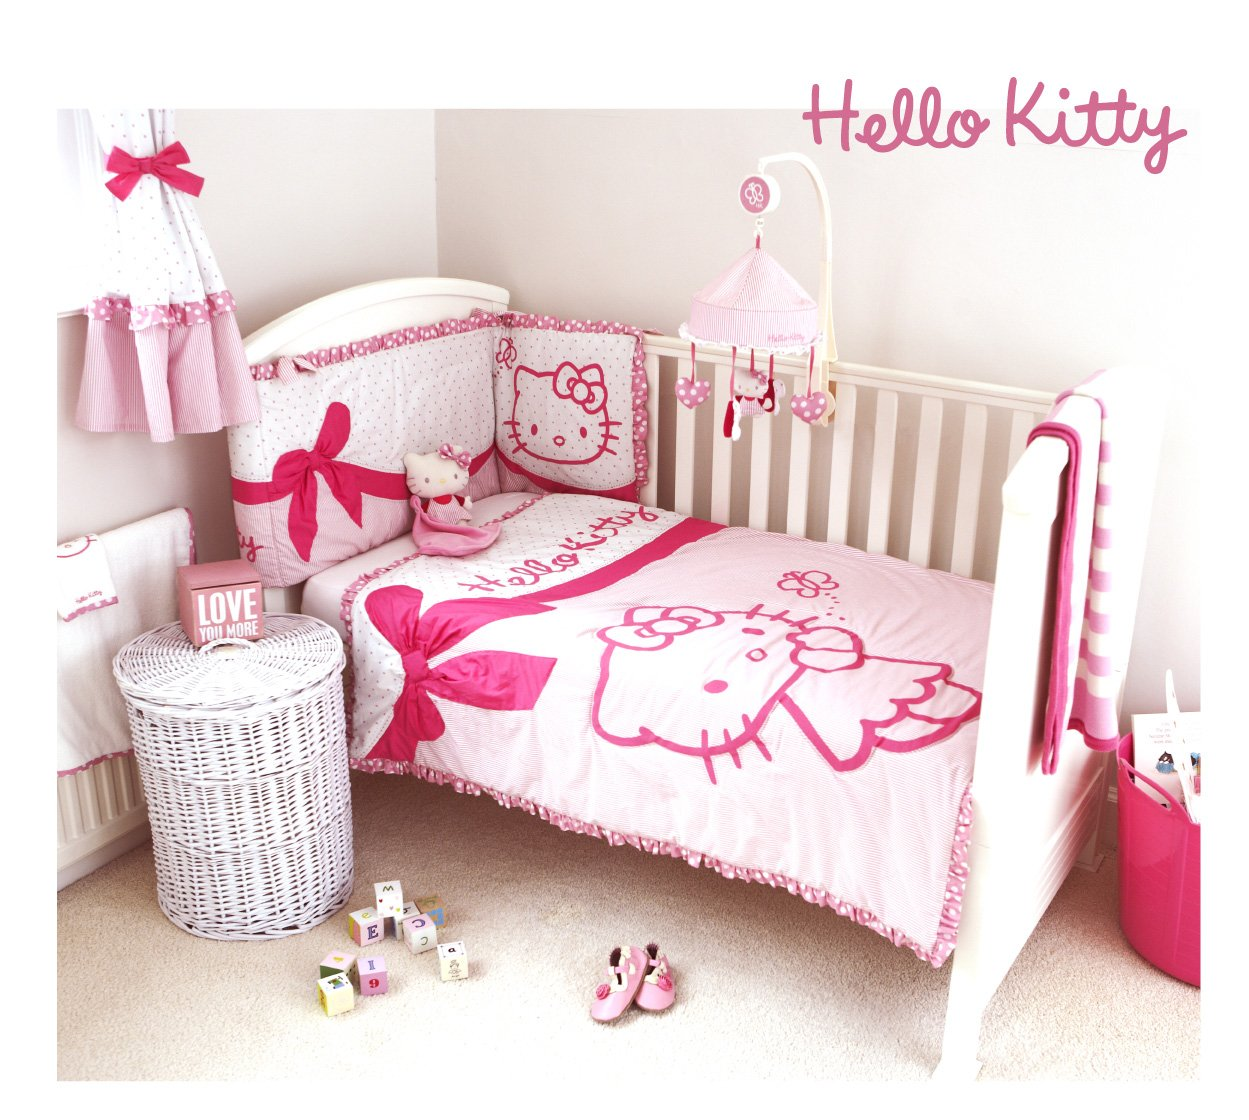 parure lit hello kitty. Black Bedroom Furniture Sets. Home Design Ideas